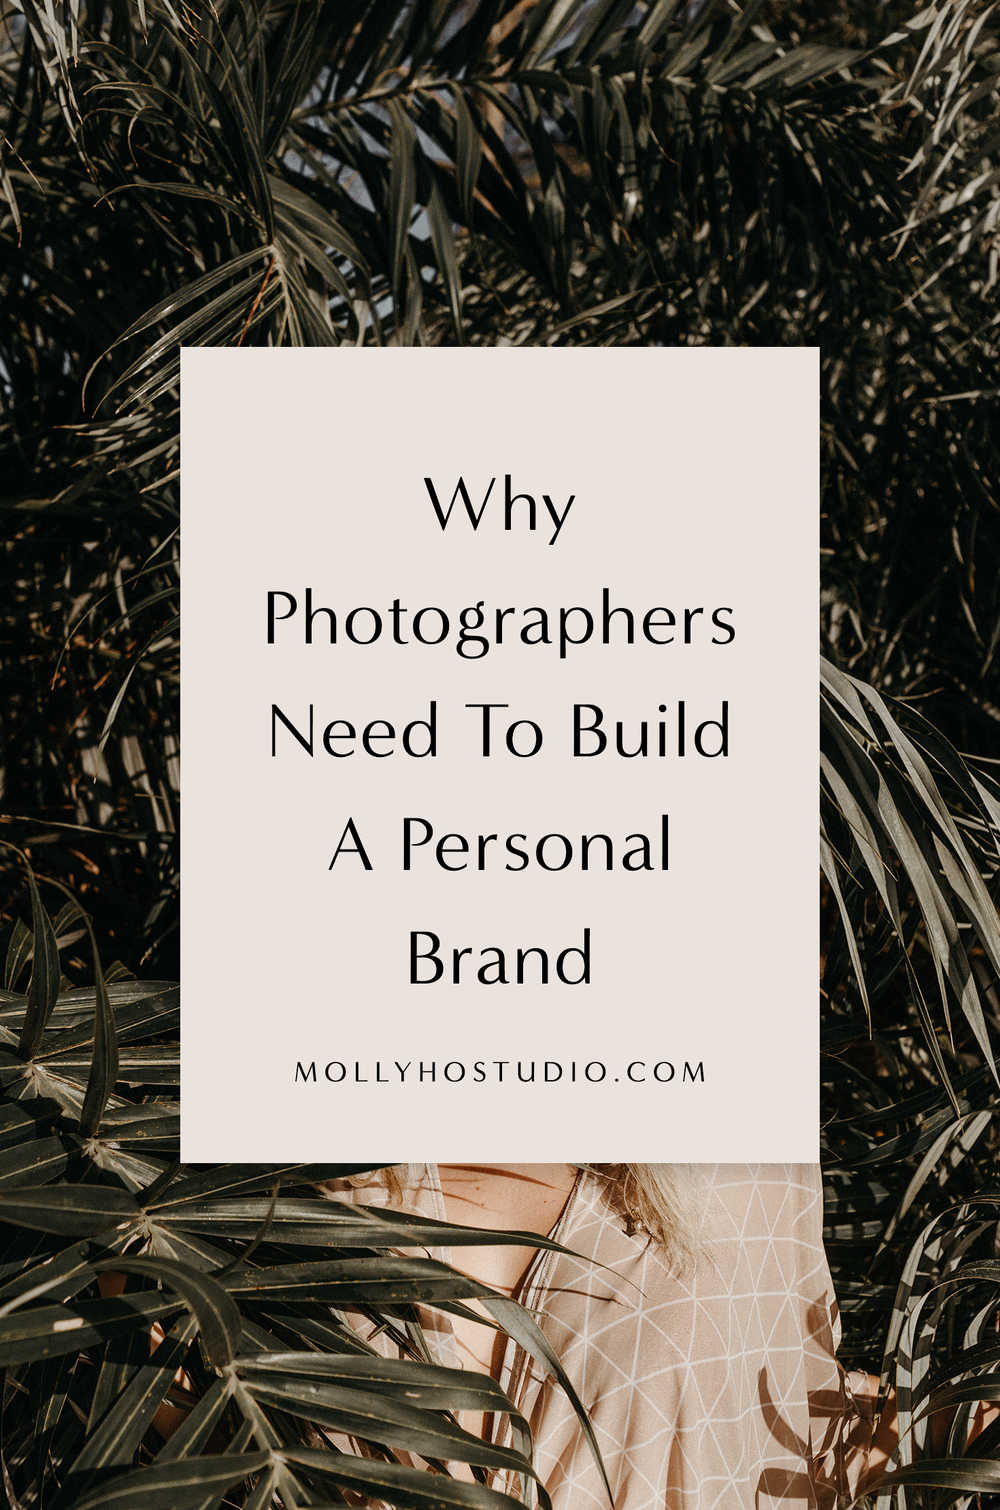 Why Photographers Need To Build A Personal Brand   Branding and Marketing Tips for Photographers   How To Start A Photography Business   Building A Personal Brand   Growing Your Photography Business   How To Set Yourself Apart In An Oversaturated Market   Getting More Photography Clients   Molly Ho Studio